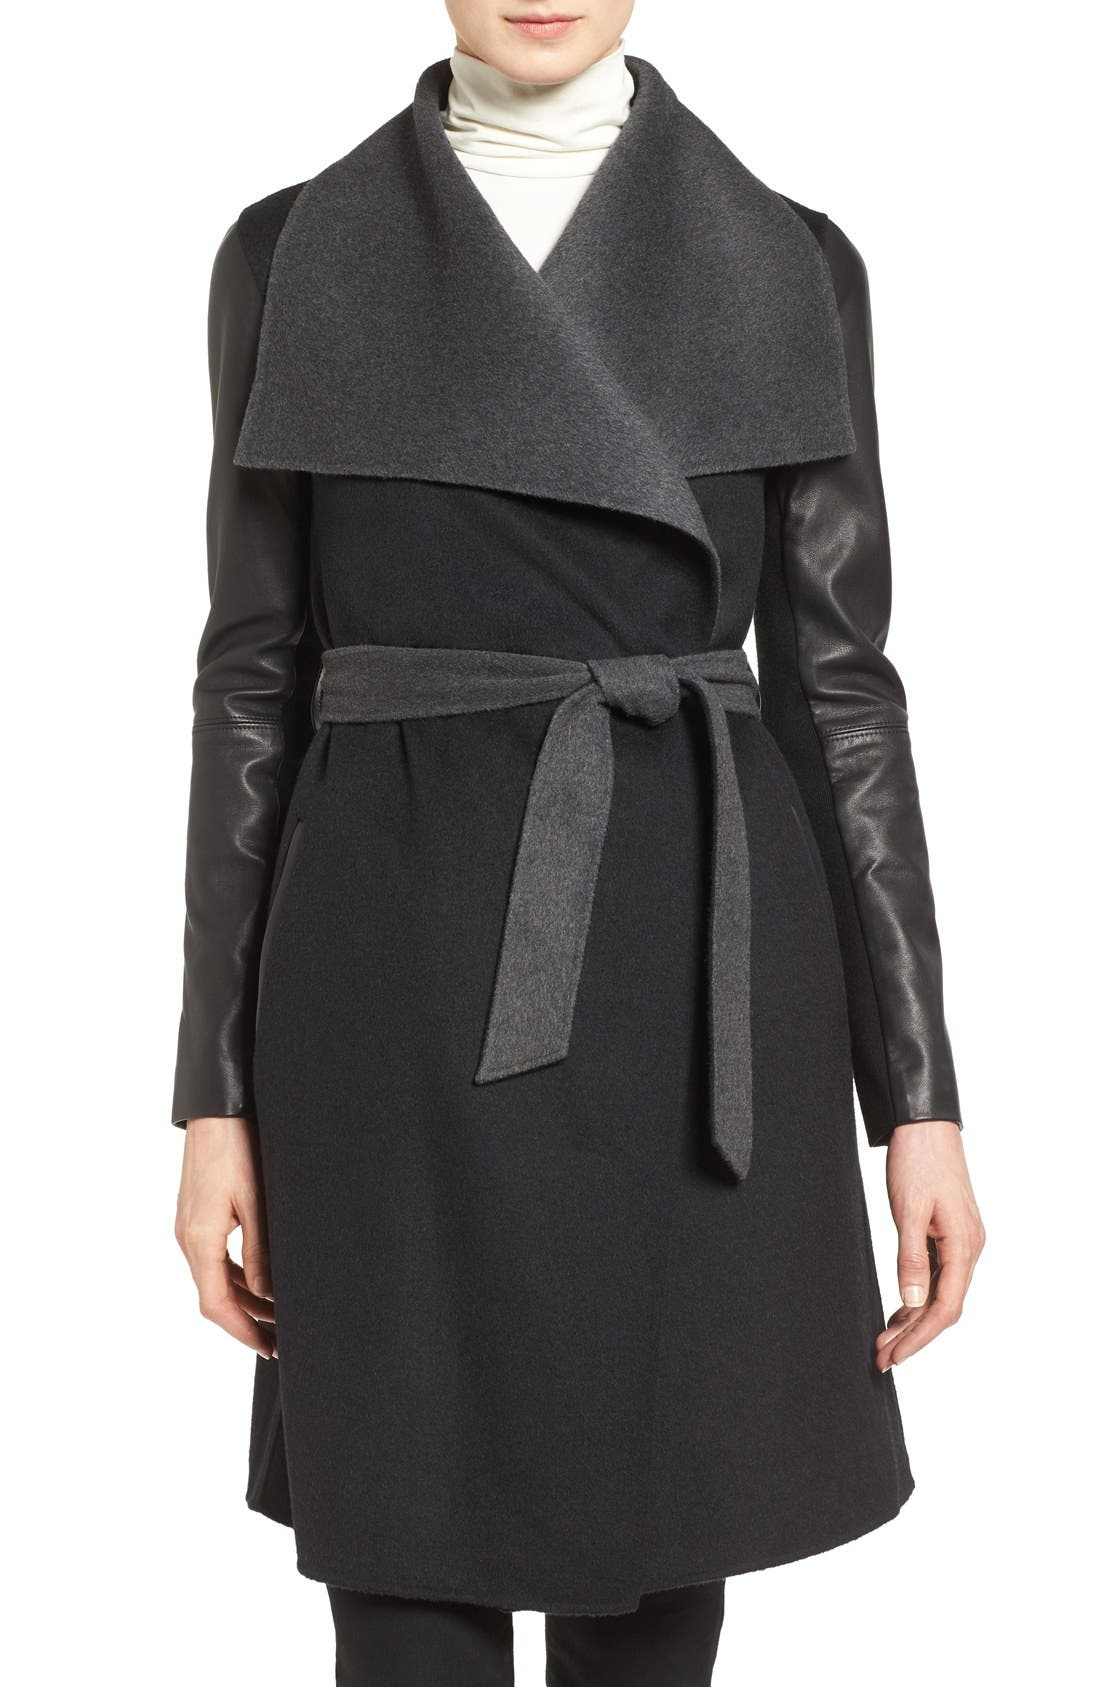 MACKAGE Leather Sleeve Wool Blend Wrap Coat, Main, color, 001